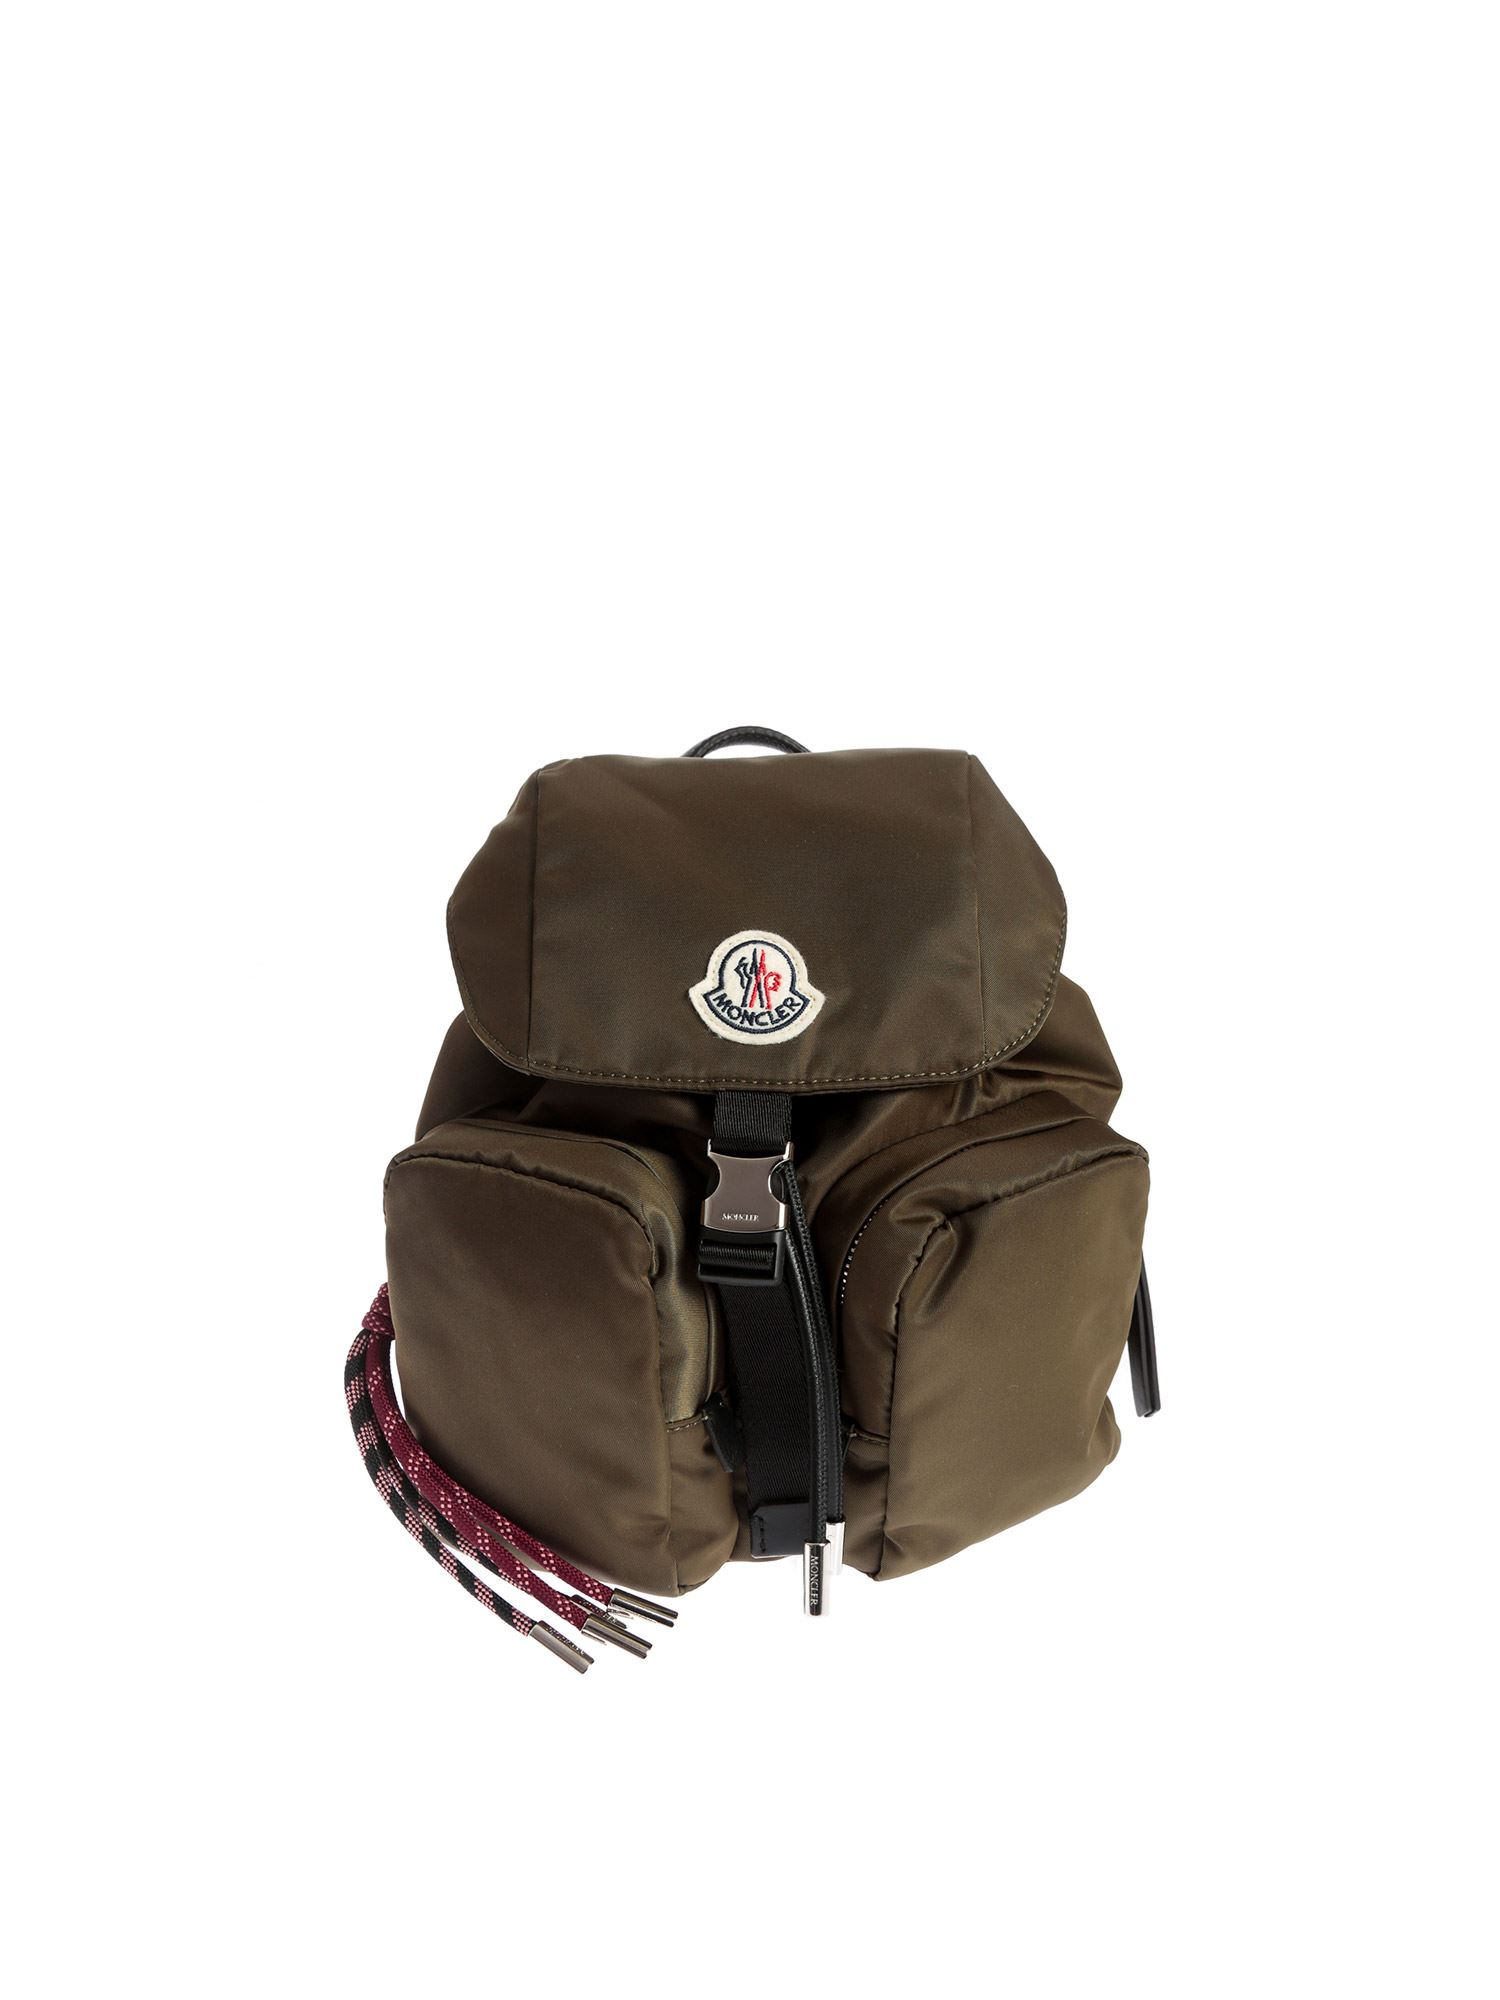 Moncler SMALL DAUPHINE BACKPACK IN ARMY GREEN